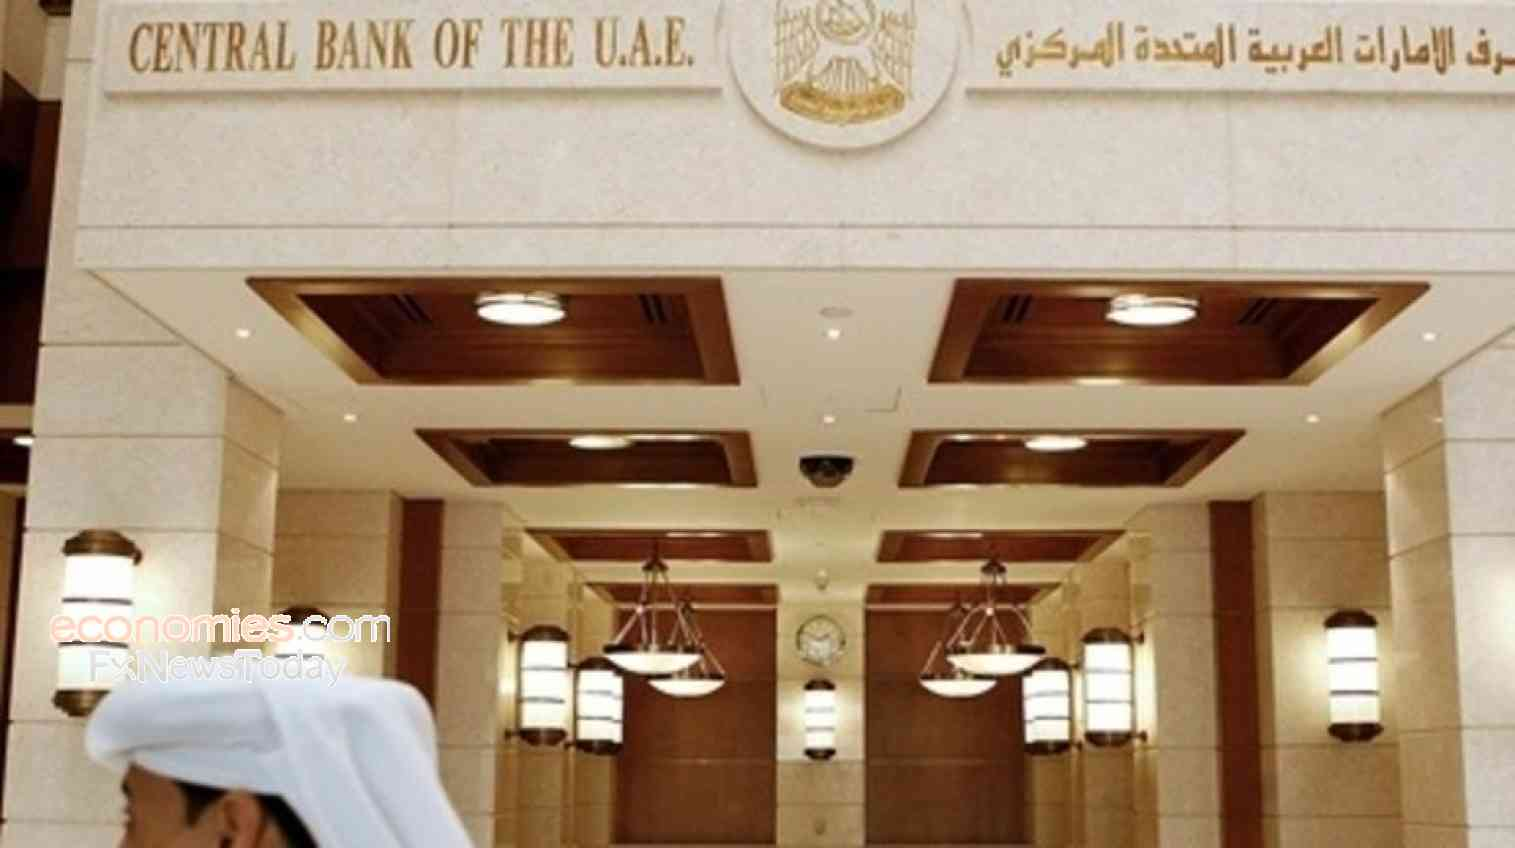 UAE economy to grow 3.5% in 2019, says central bank